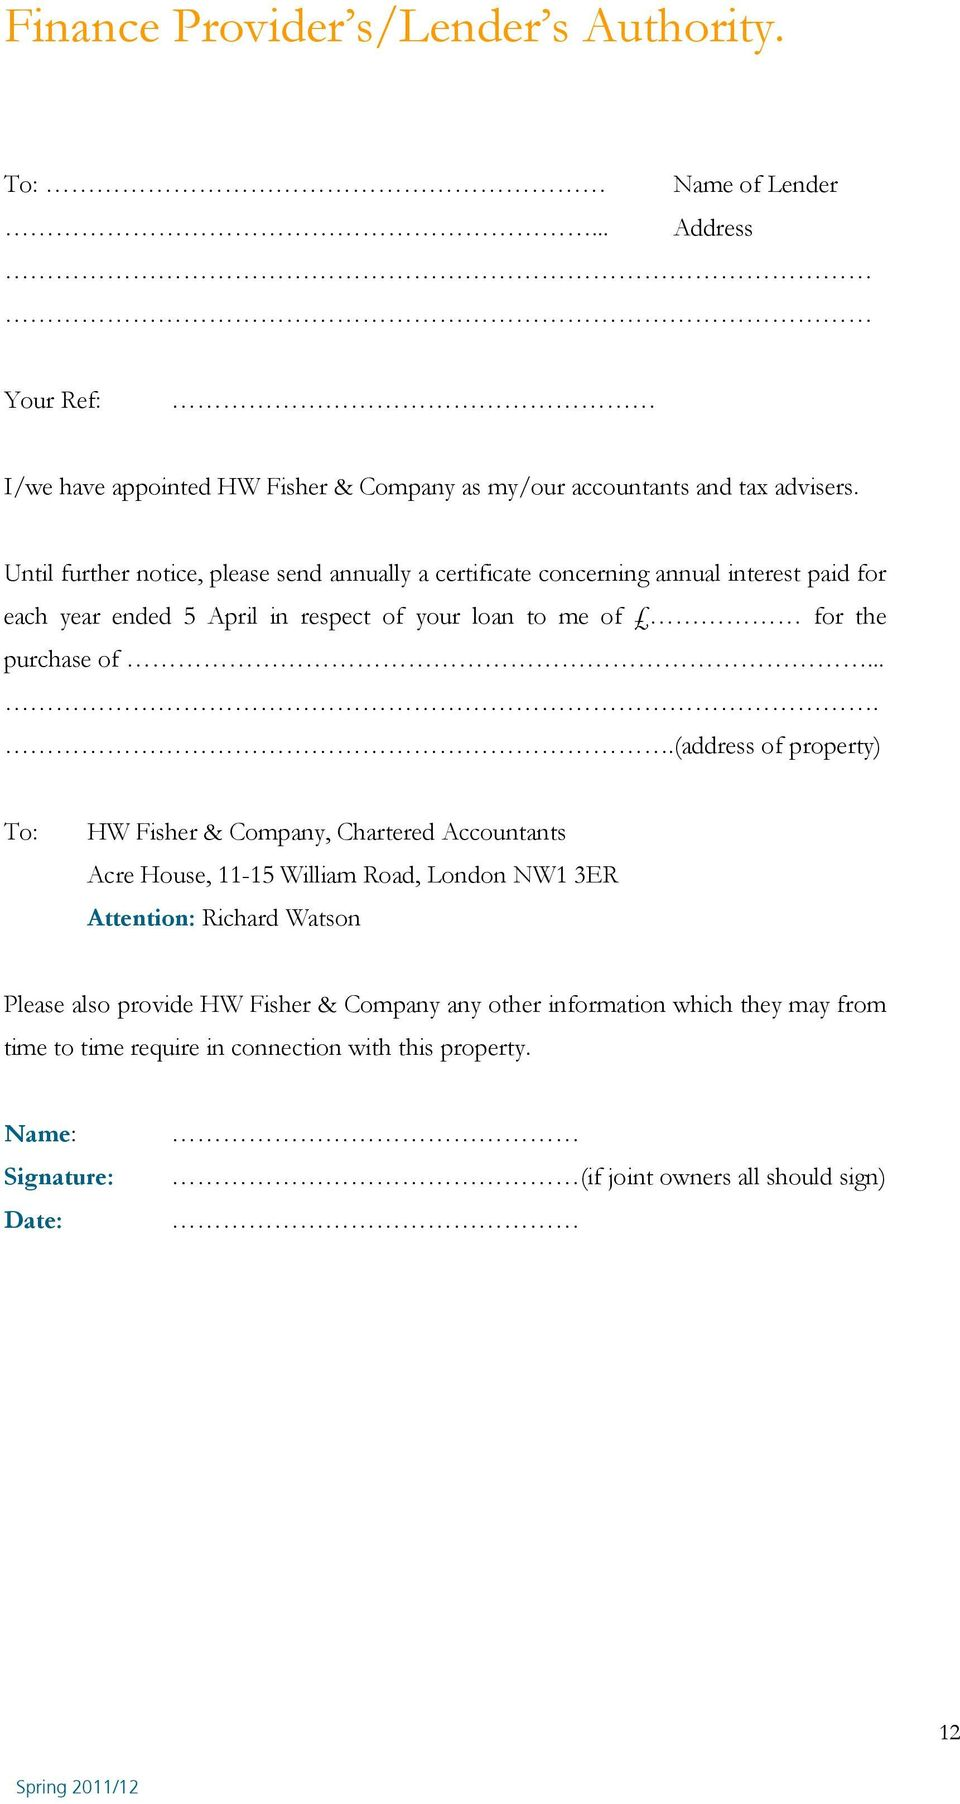 of.....(address of property) To: HW Fisher & Company, Chartered Accountants Acre House, 11-15 William Road, London NW1 3ER Attention: Richard Watson Please also